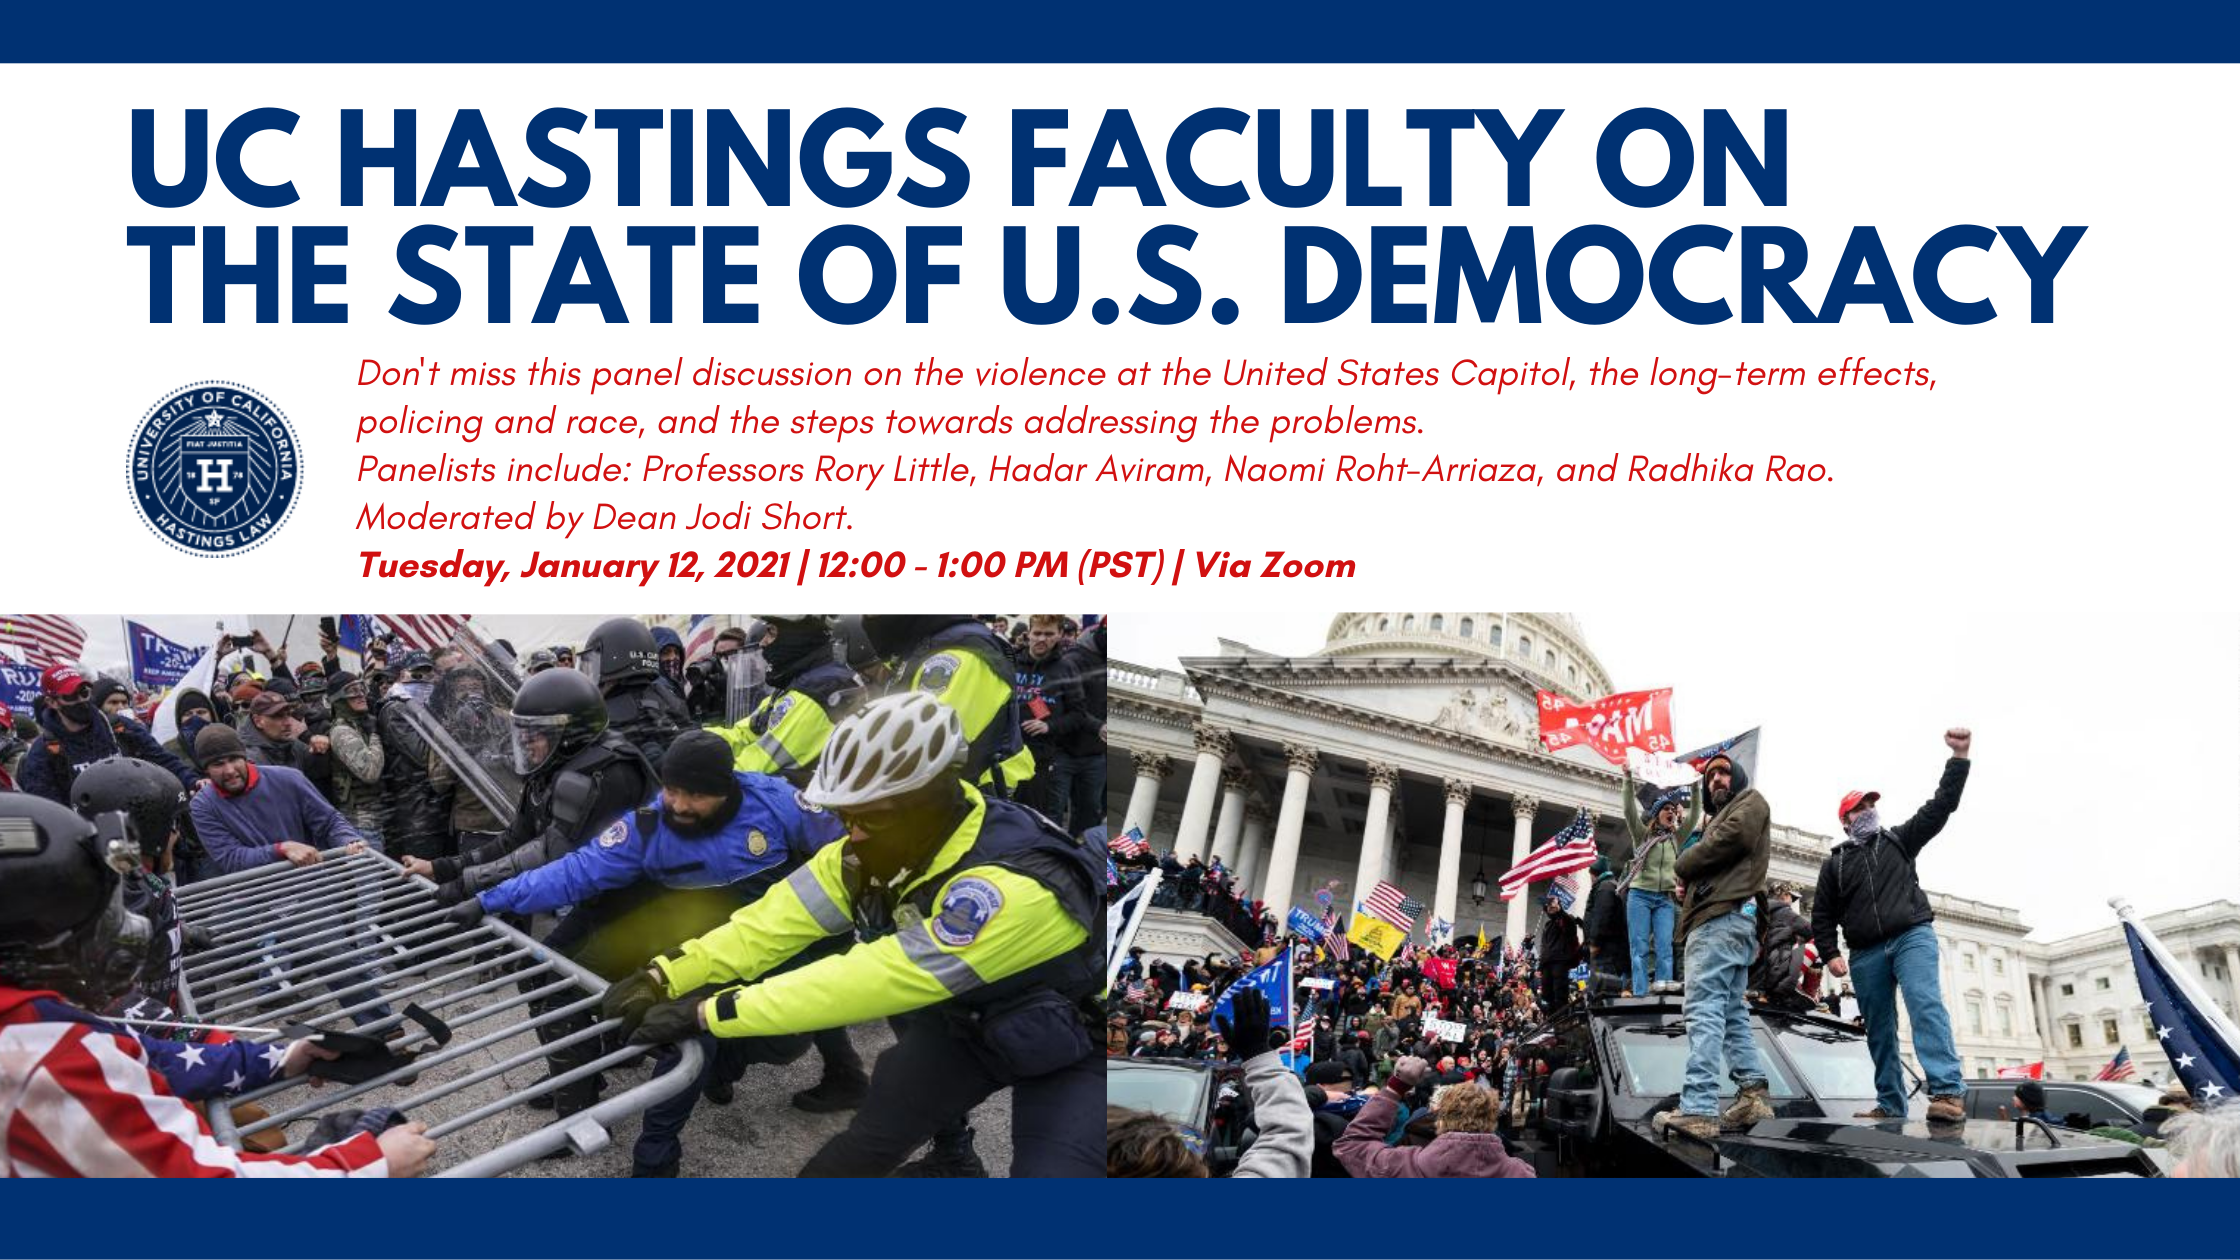 UC Hastings Faculty on the State of U.S. Democracy